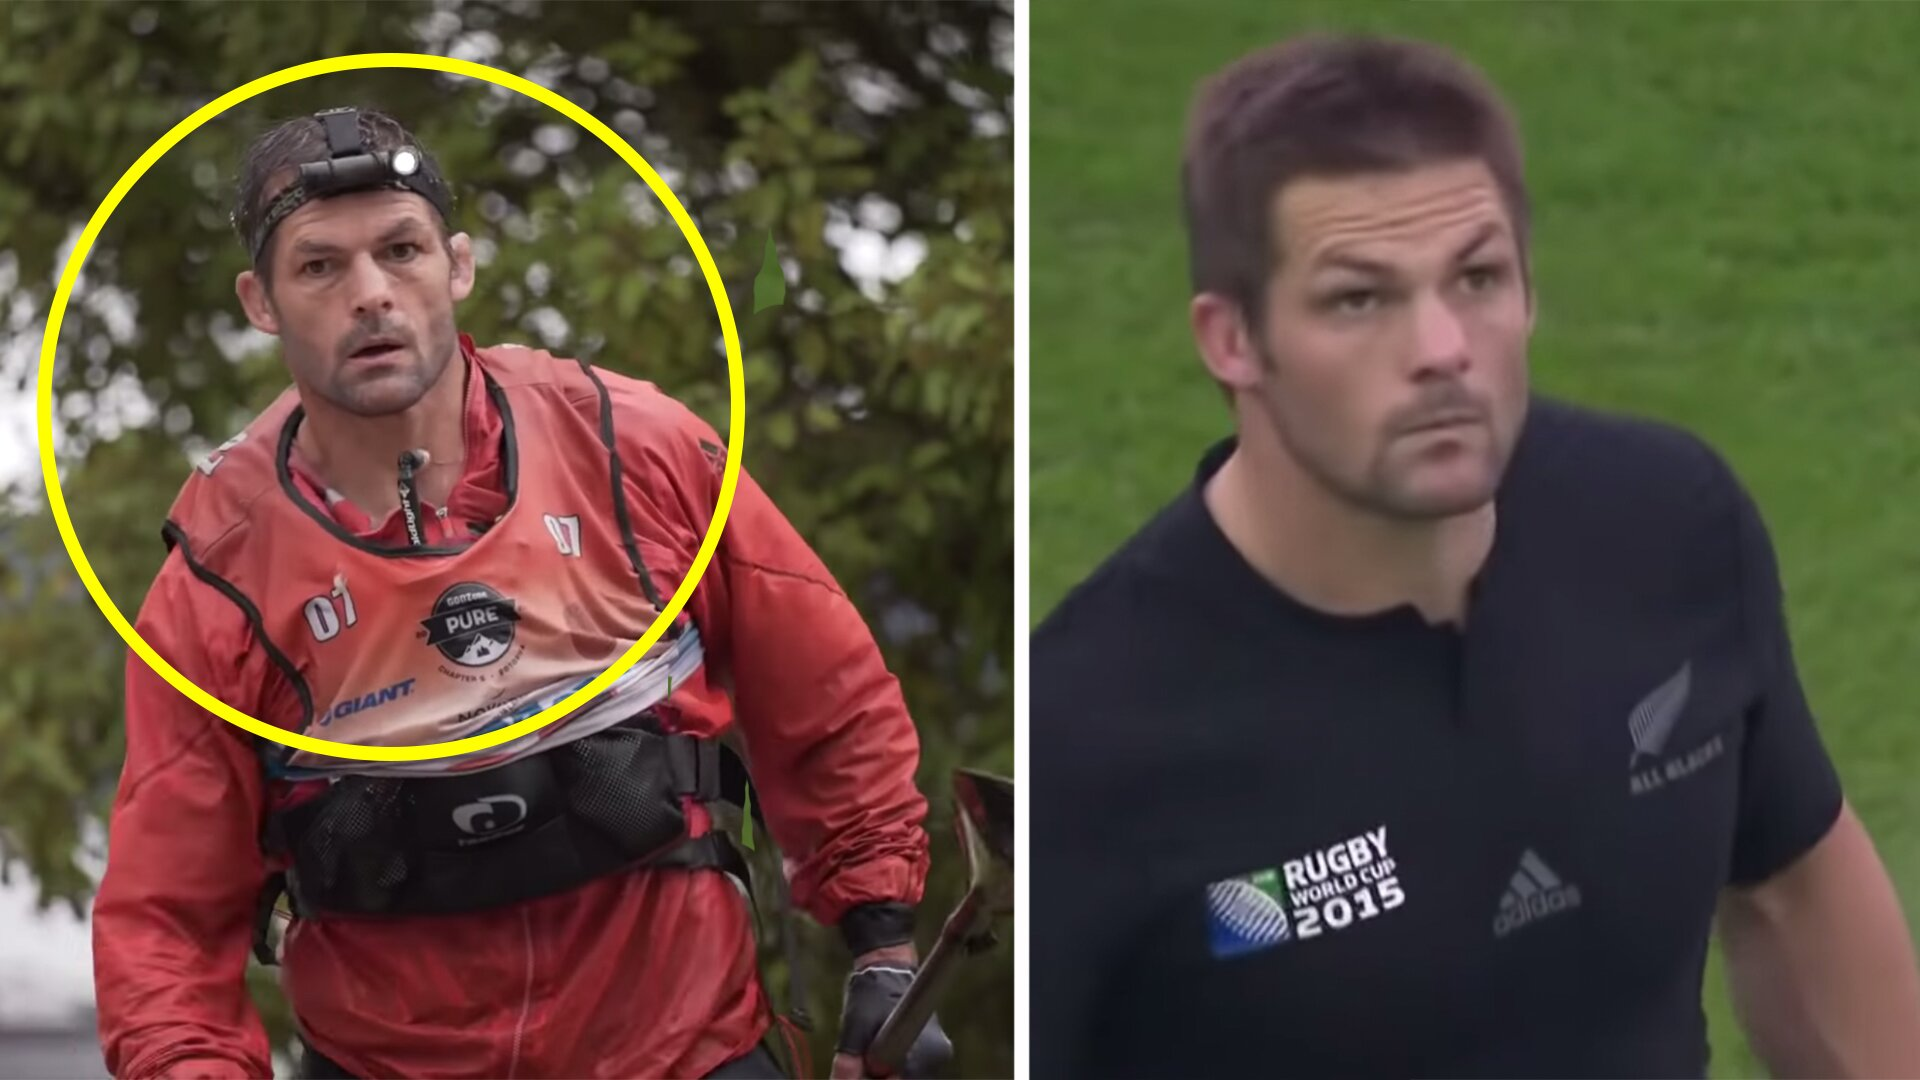 New Zealand rugby legend Richie McCaw looks unrecognisable in 2021